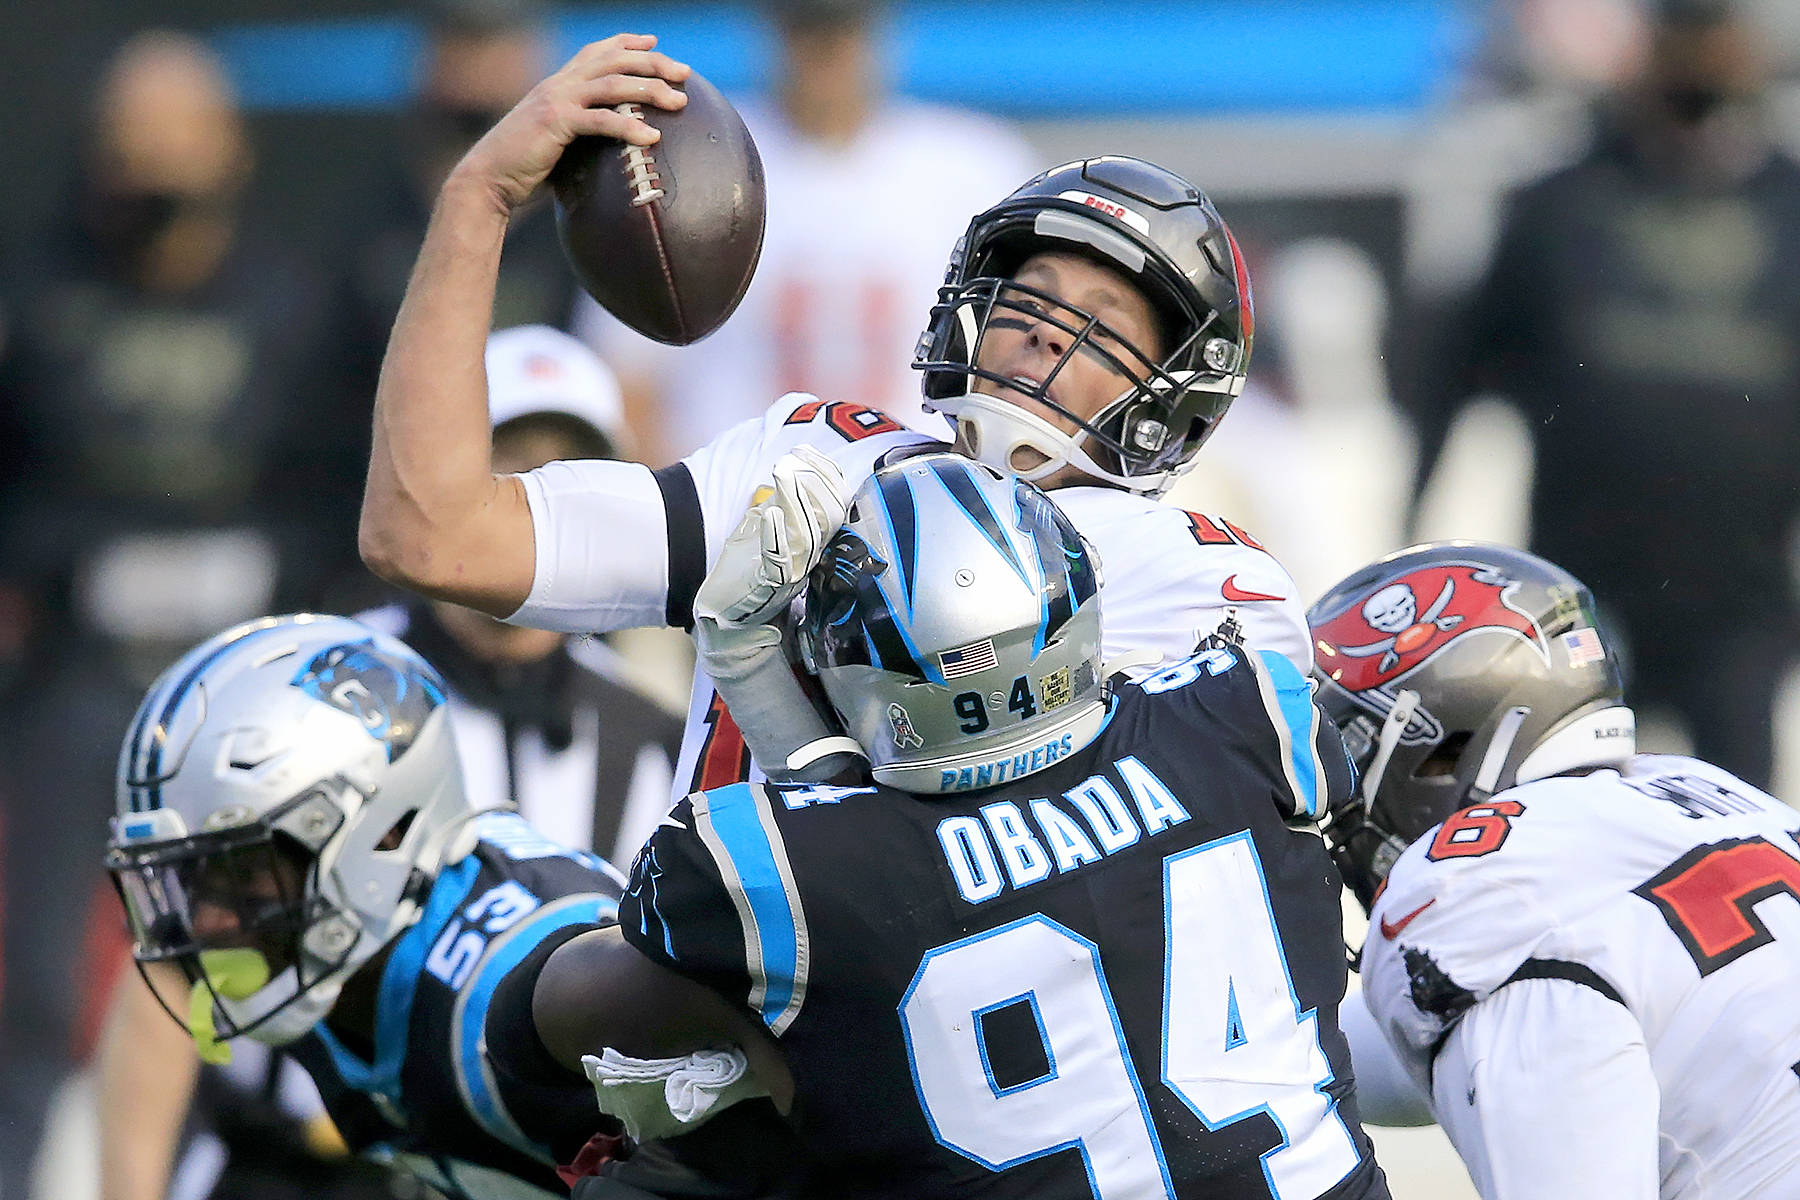 Tampa Bay Buccaneers quarterback Tom Brady (12) is sacked by the Carolina Panthers during the second half of an NFL football game, Sunday, Nov. 15, 2020, in Charlotte , N.C. (AP Photo/Brian Blanco)